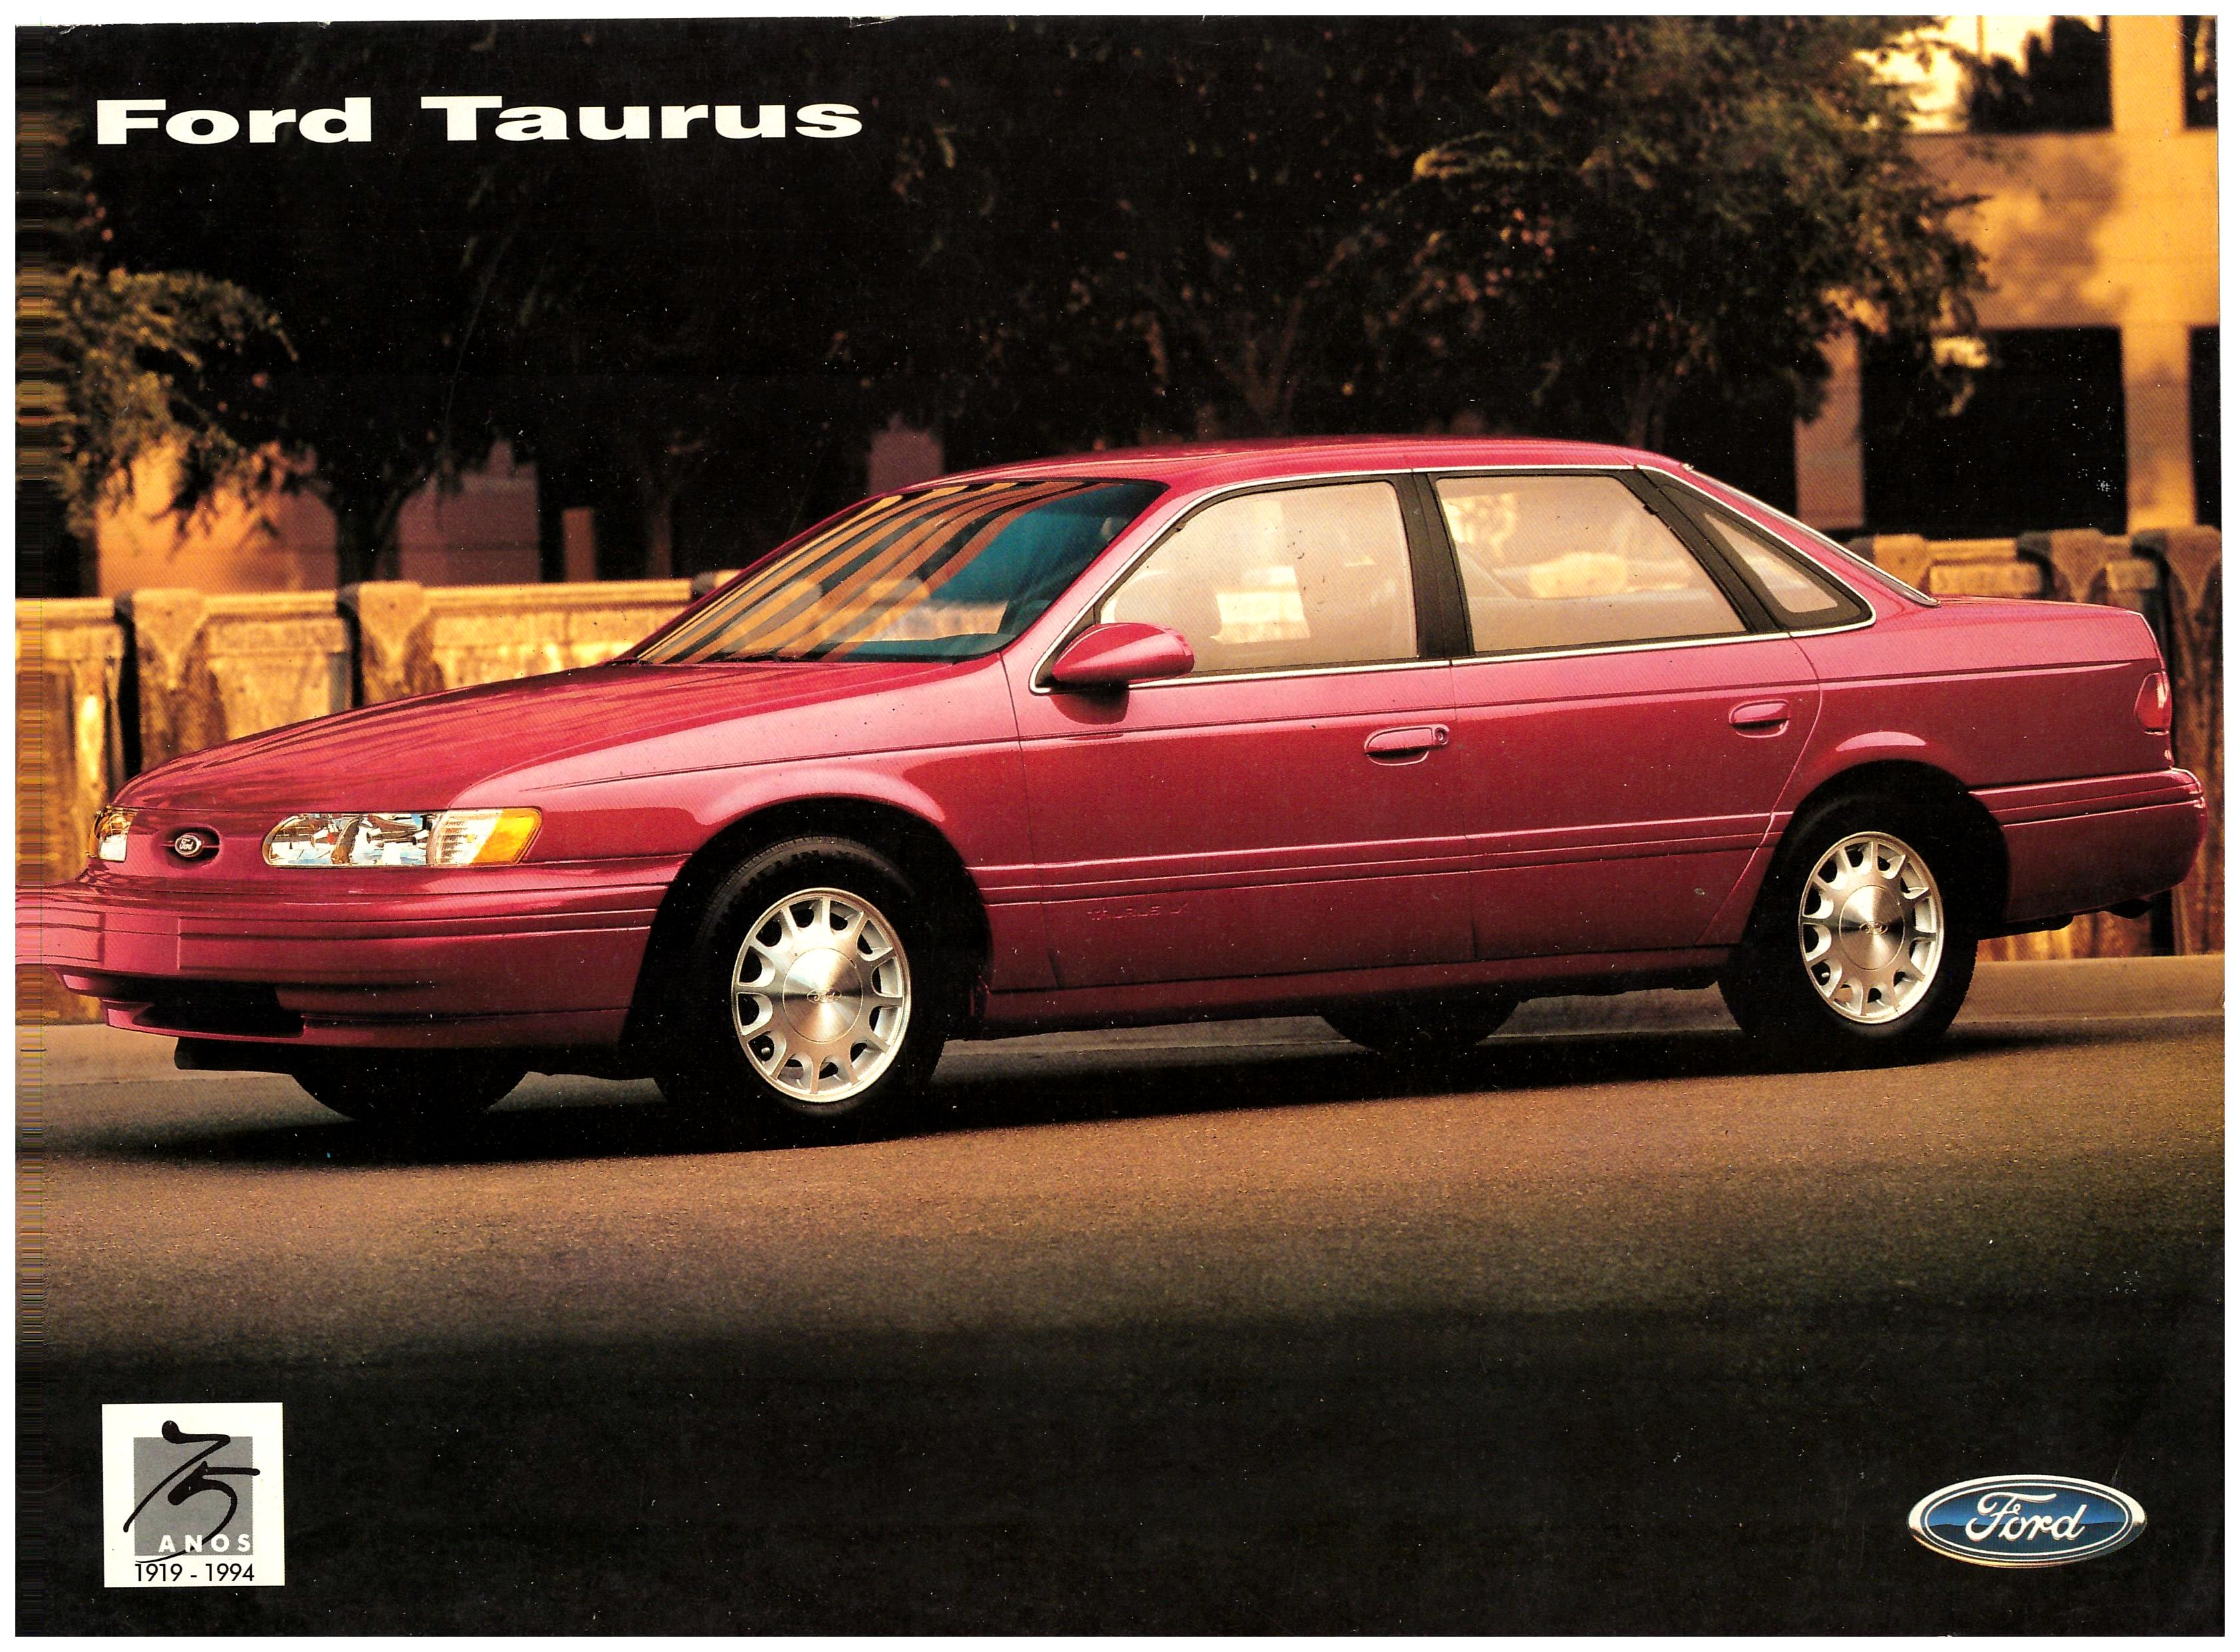 1995 ford taurus brochure